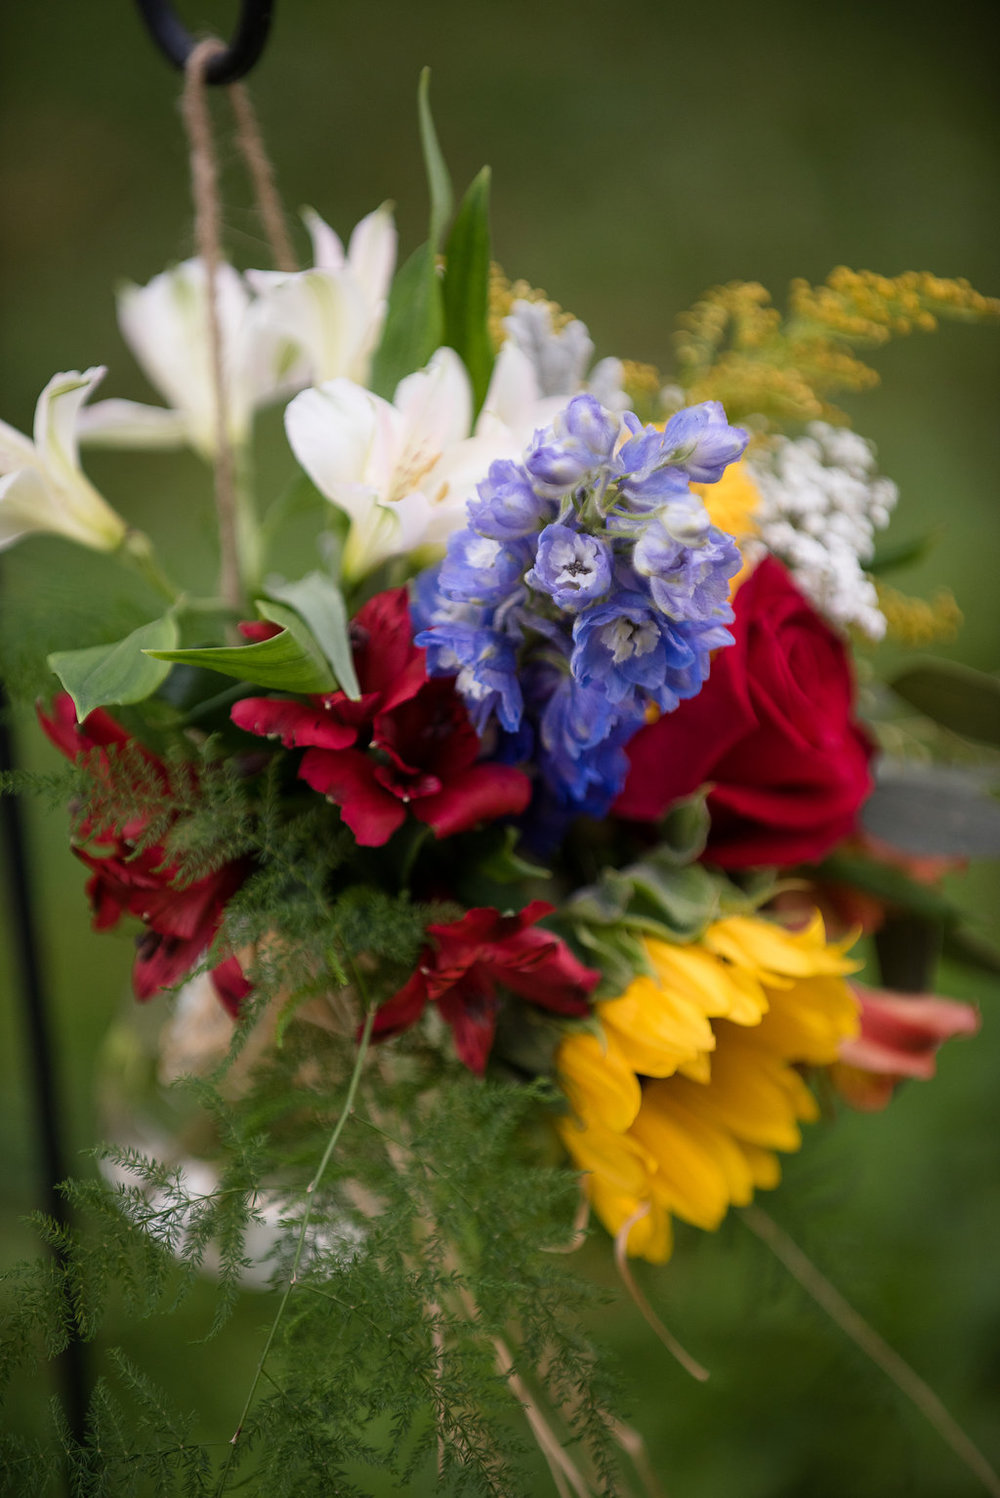 Natural Assortment Ceremony Florals (Photo Credit: Karlo Photography)